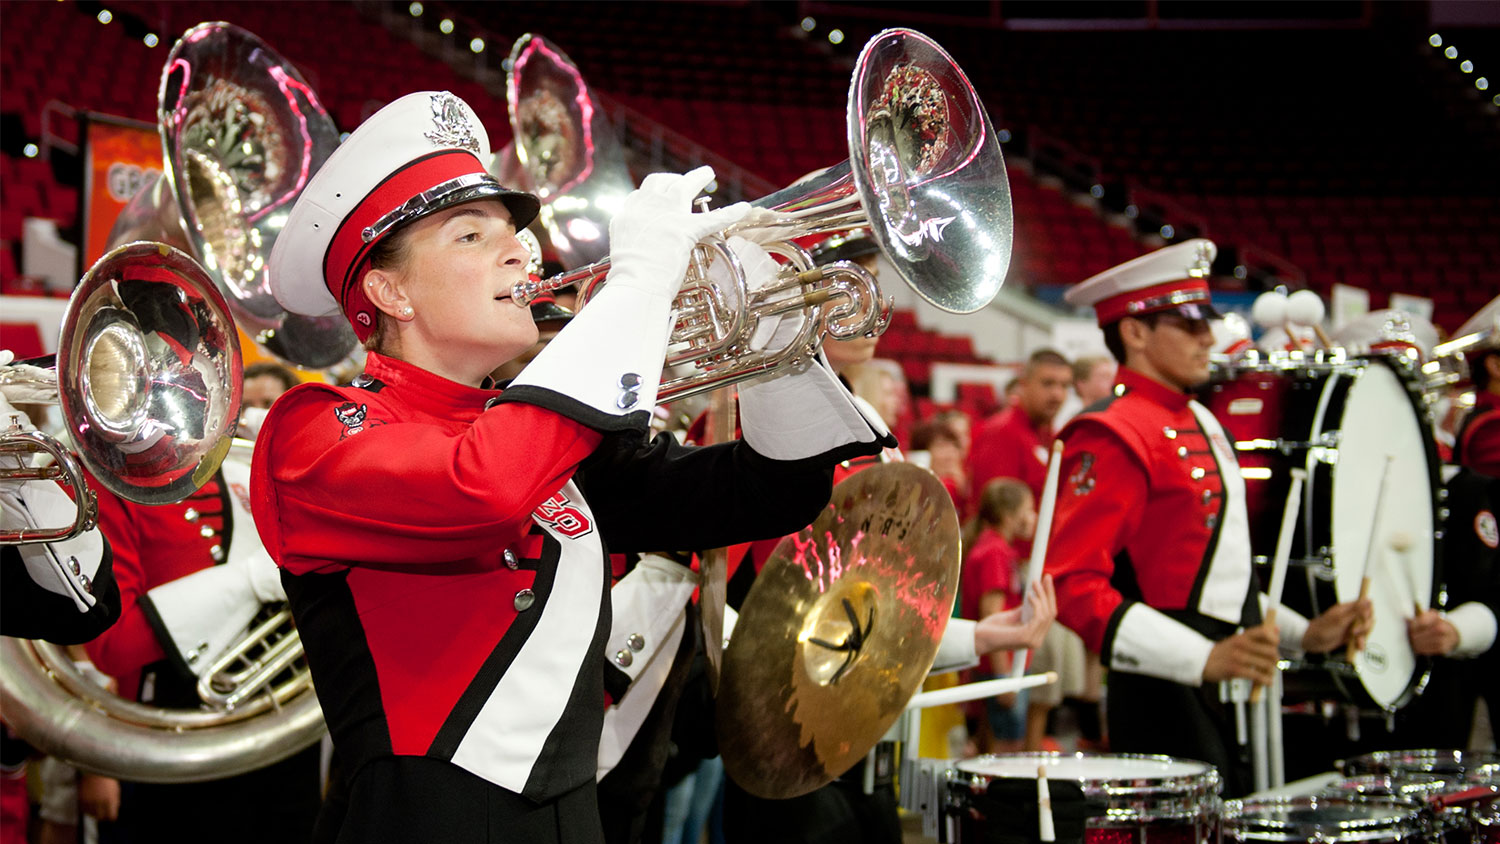 The NC State pep band plays at CALS Tailgate inside PNC Arena